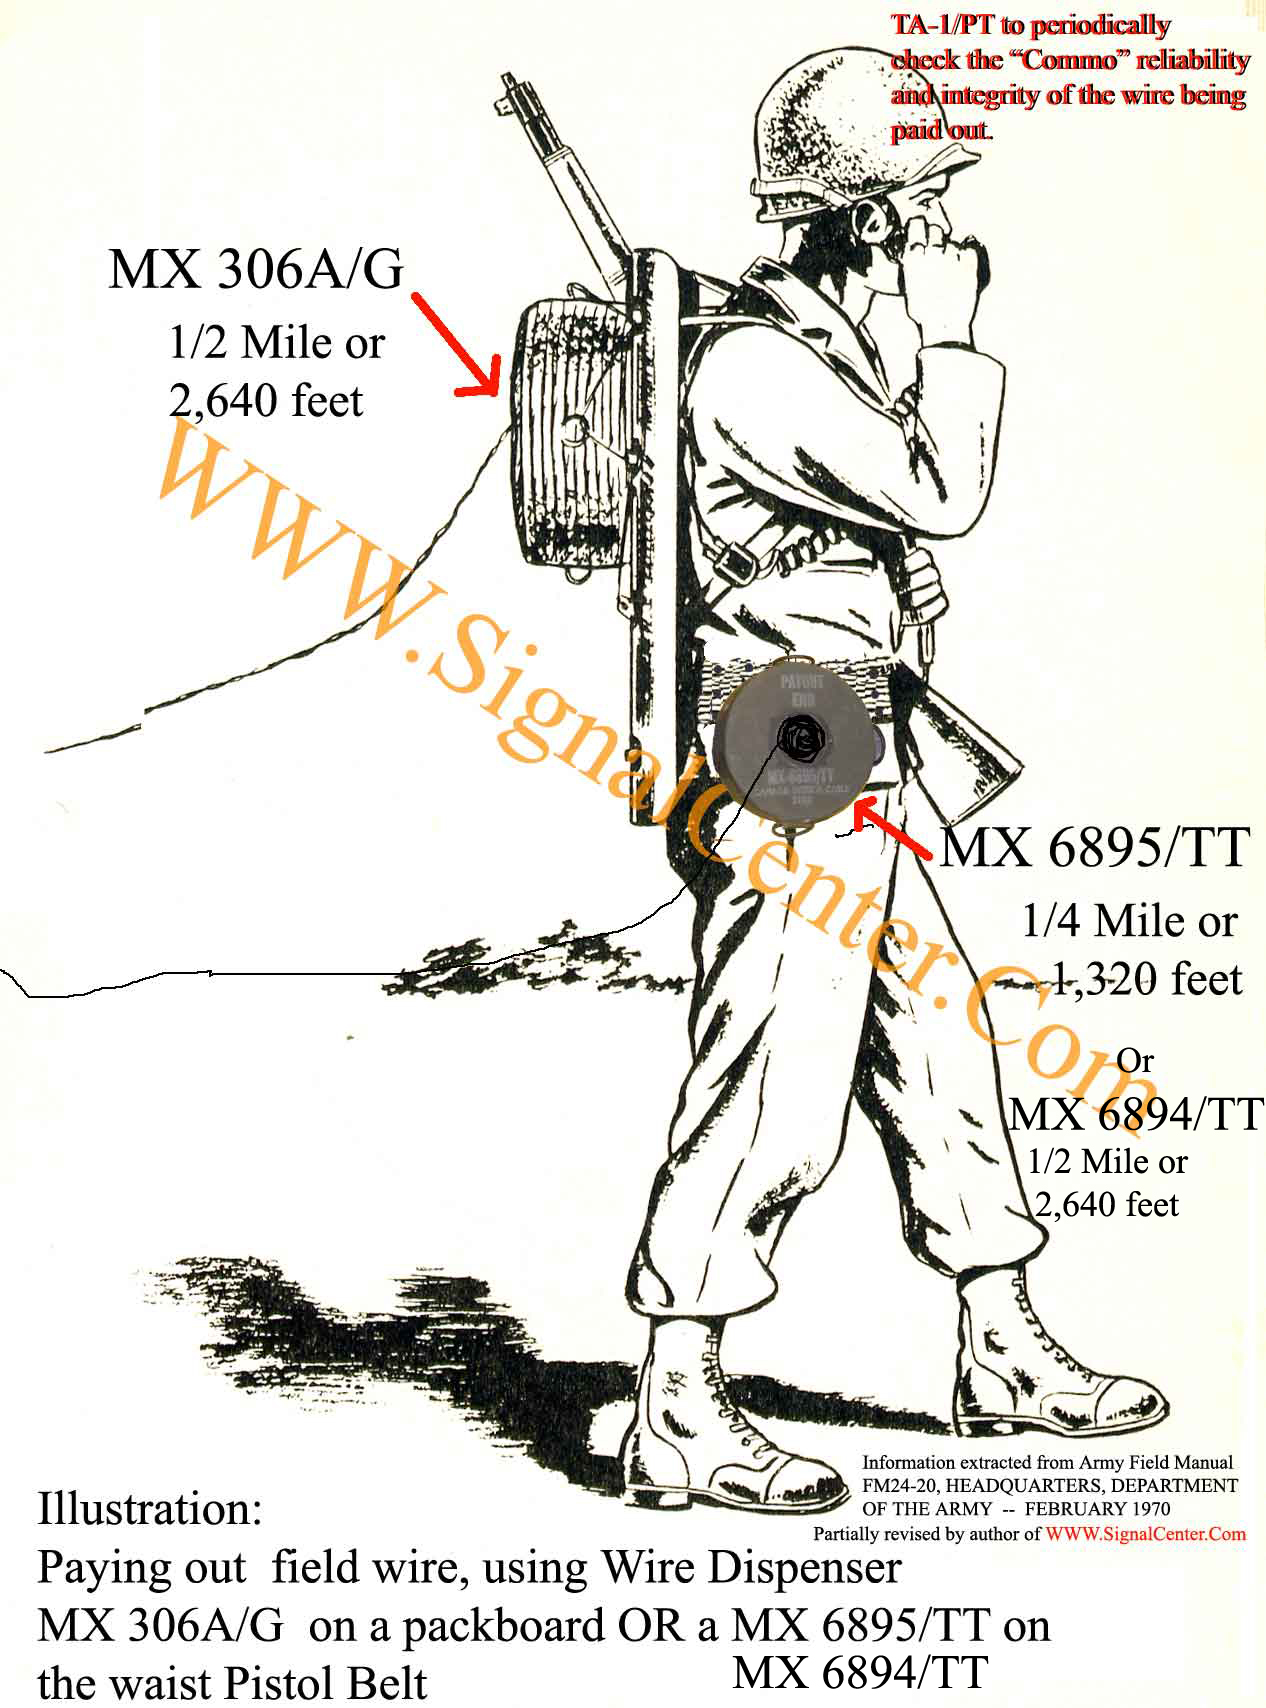 Soldier Dispensing MX-306A/G MX-6894/TT MX-6895/TT